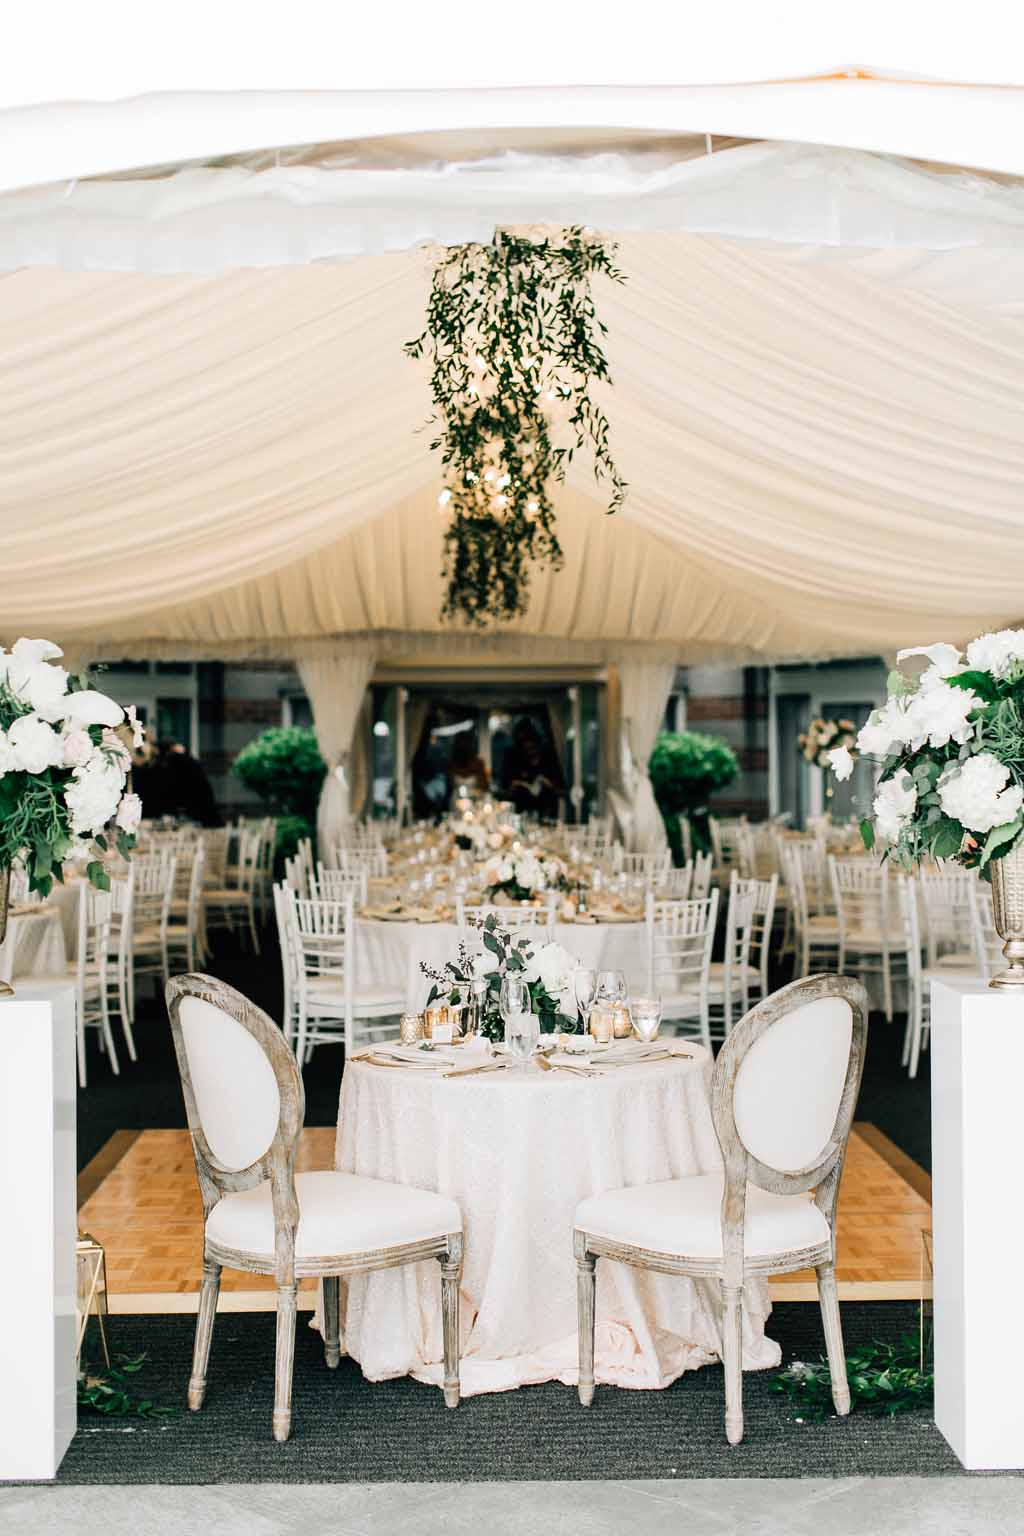 Sweetheart table at Woodmark Hotel wedding with greenery chandeliers, and tall floral backdrop on top of white pedestals